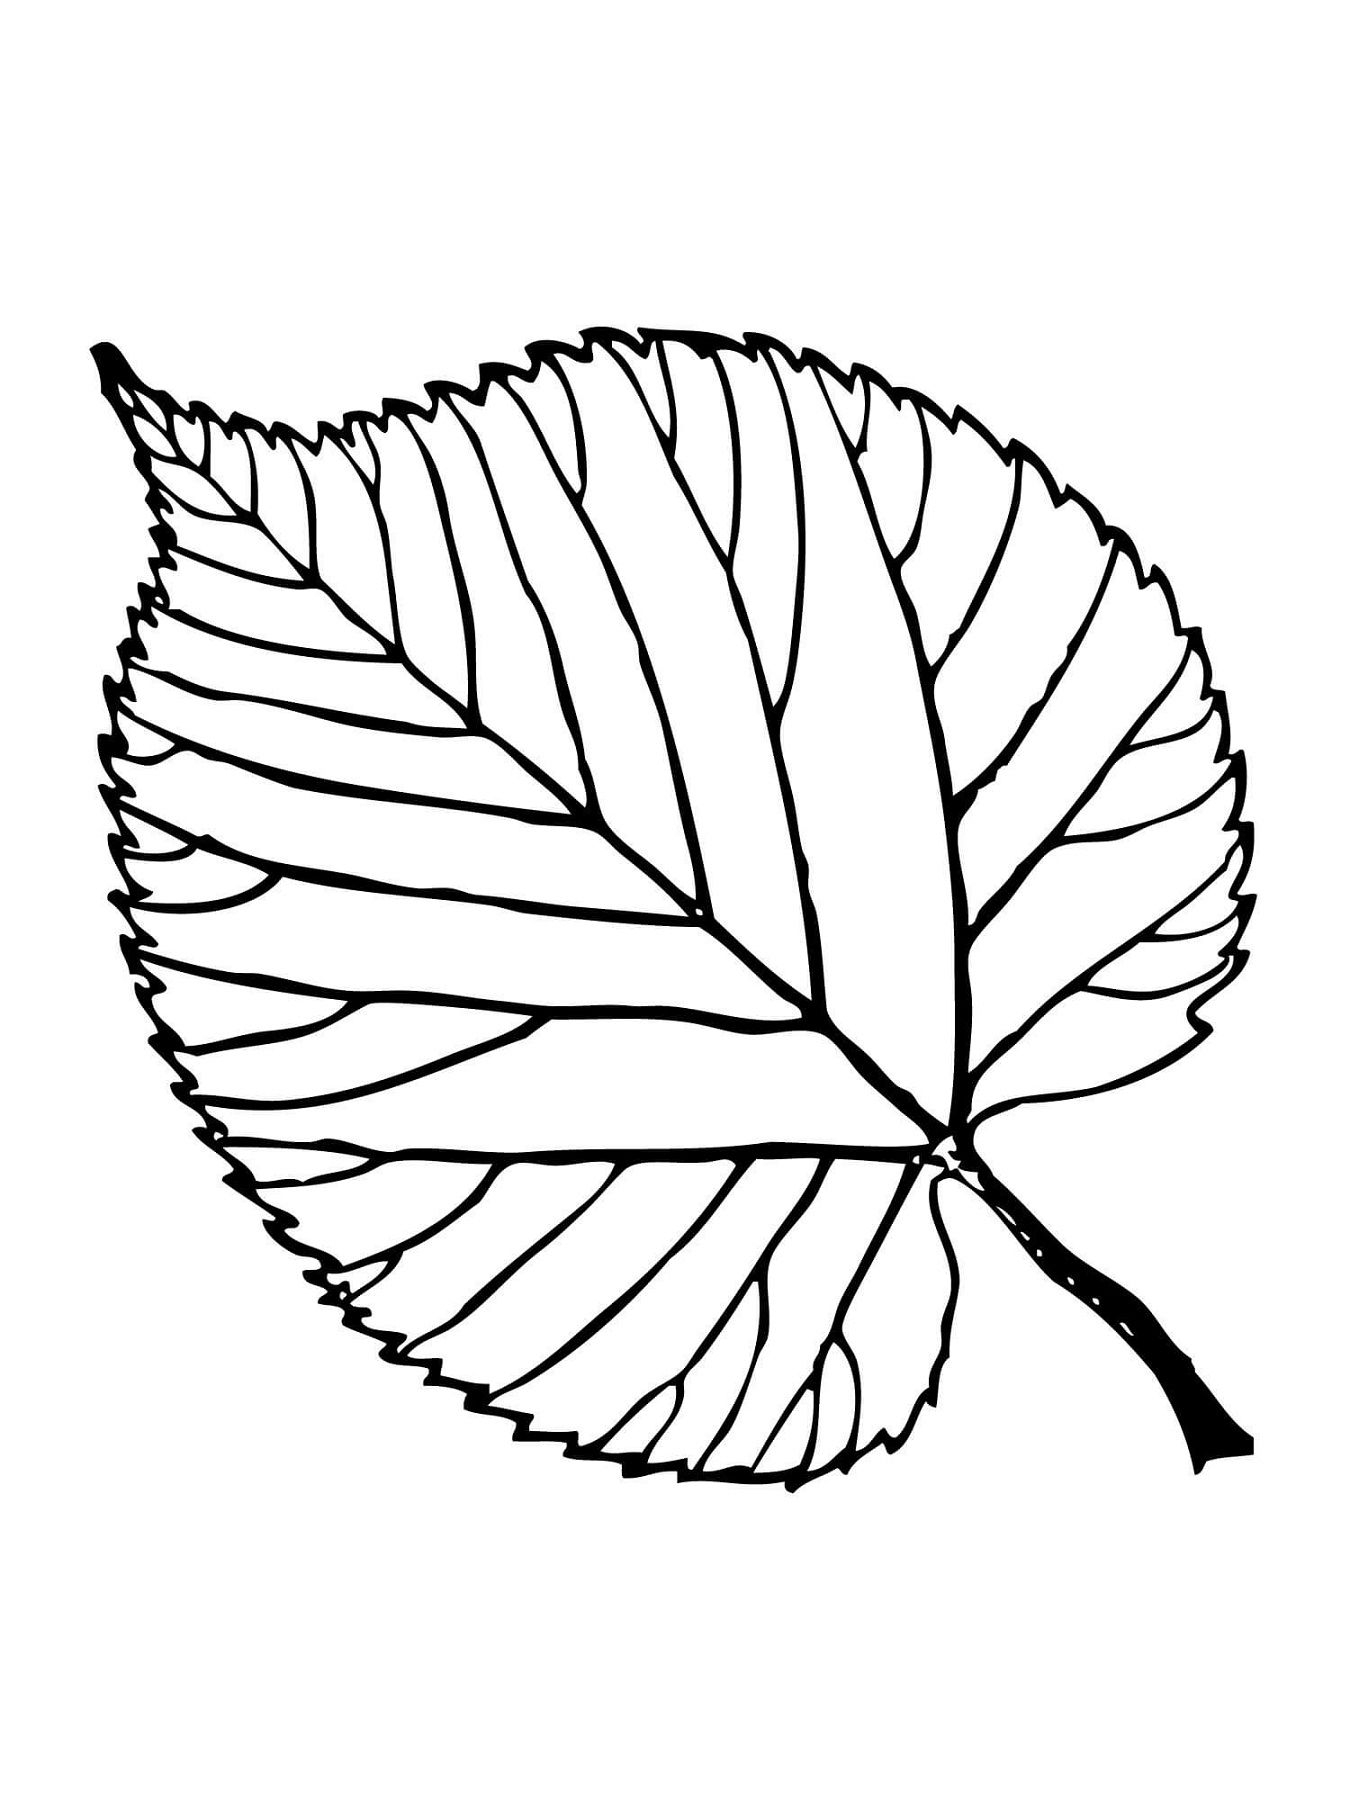 Leaf Coloring Pages Printable | Activity Shelter | Coloring Pages ...